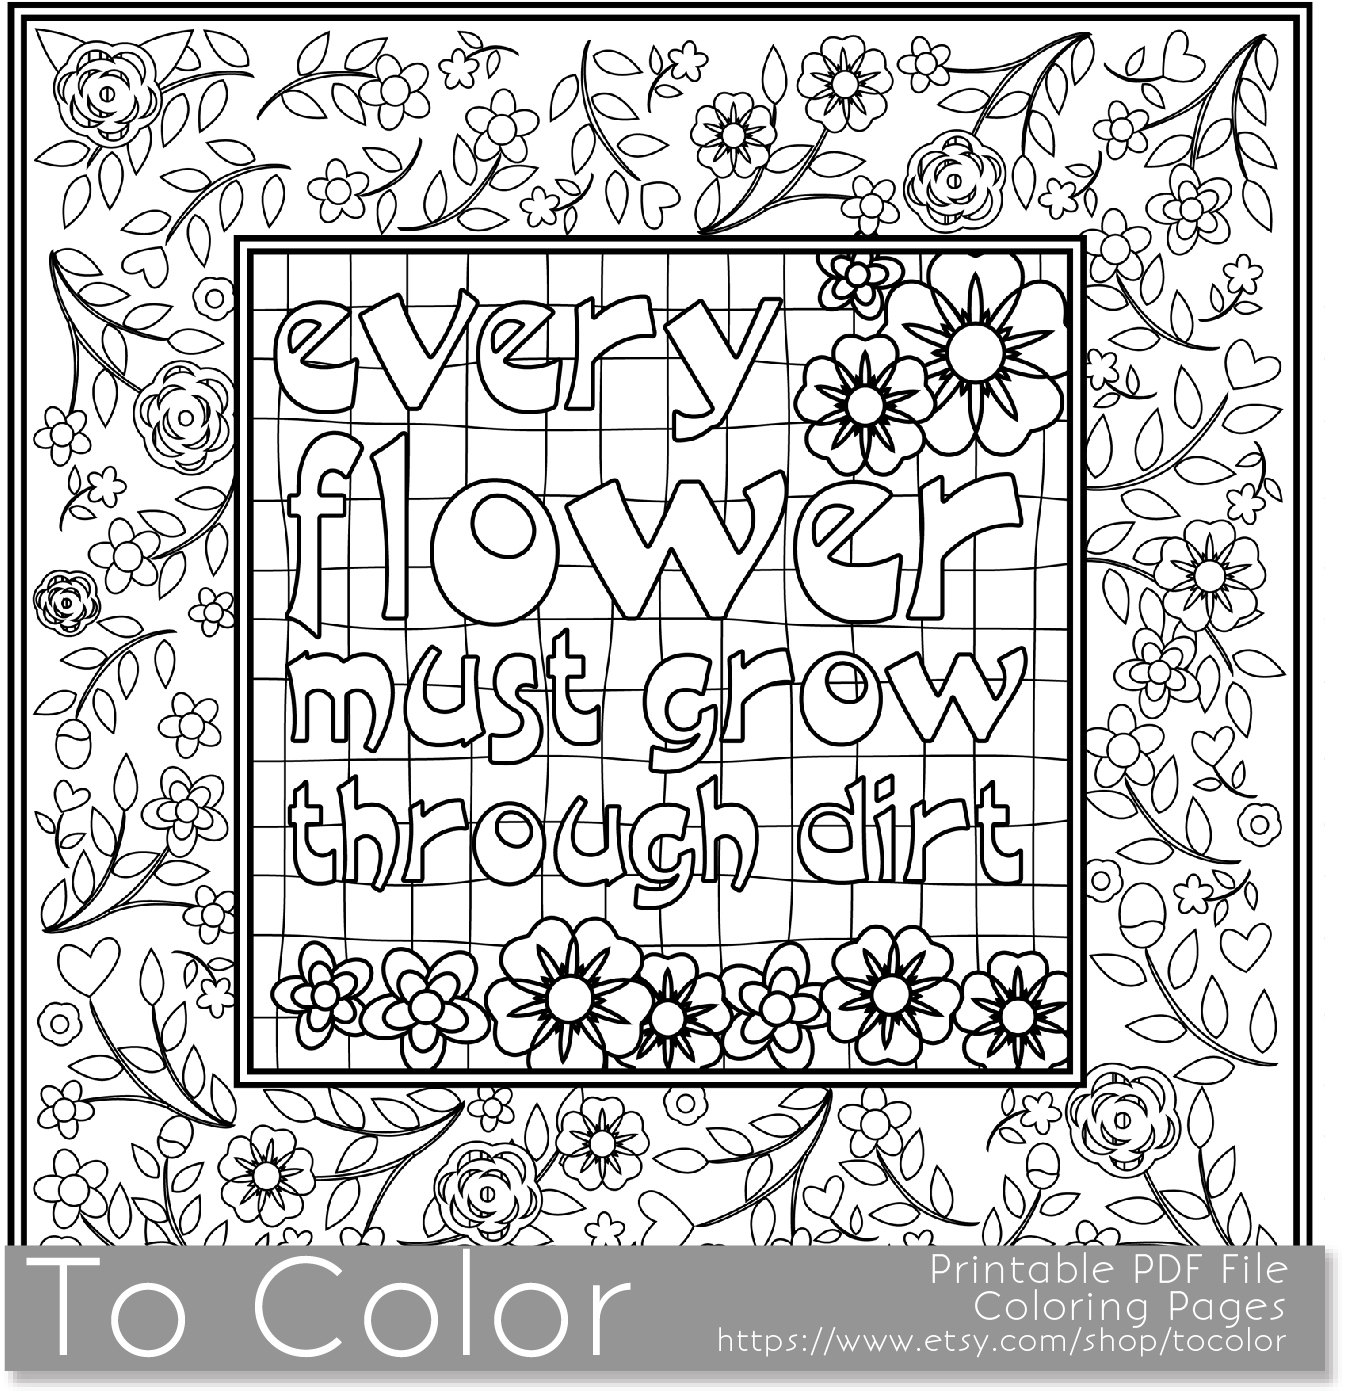 coloring pages inspirational inspirational quotes coloring pages for adults coloring inspirational pages